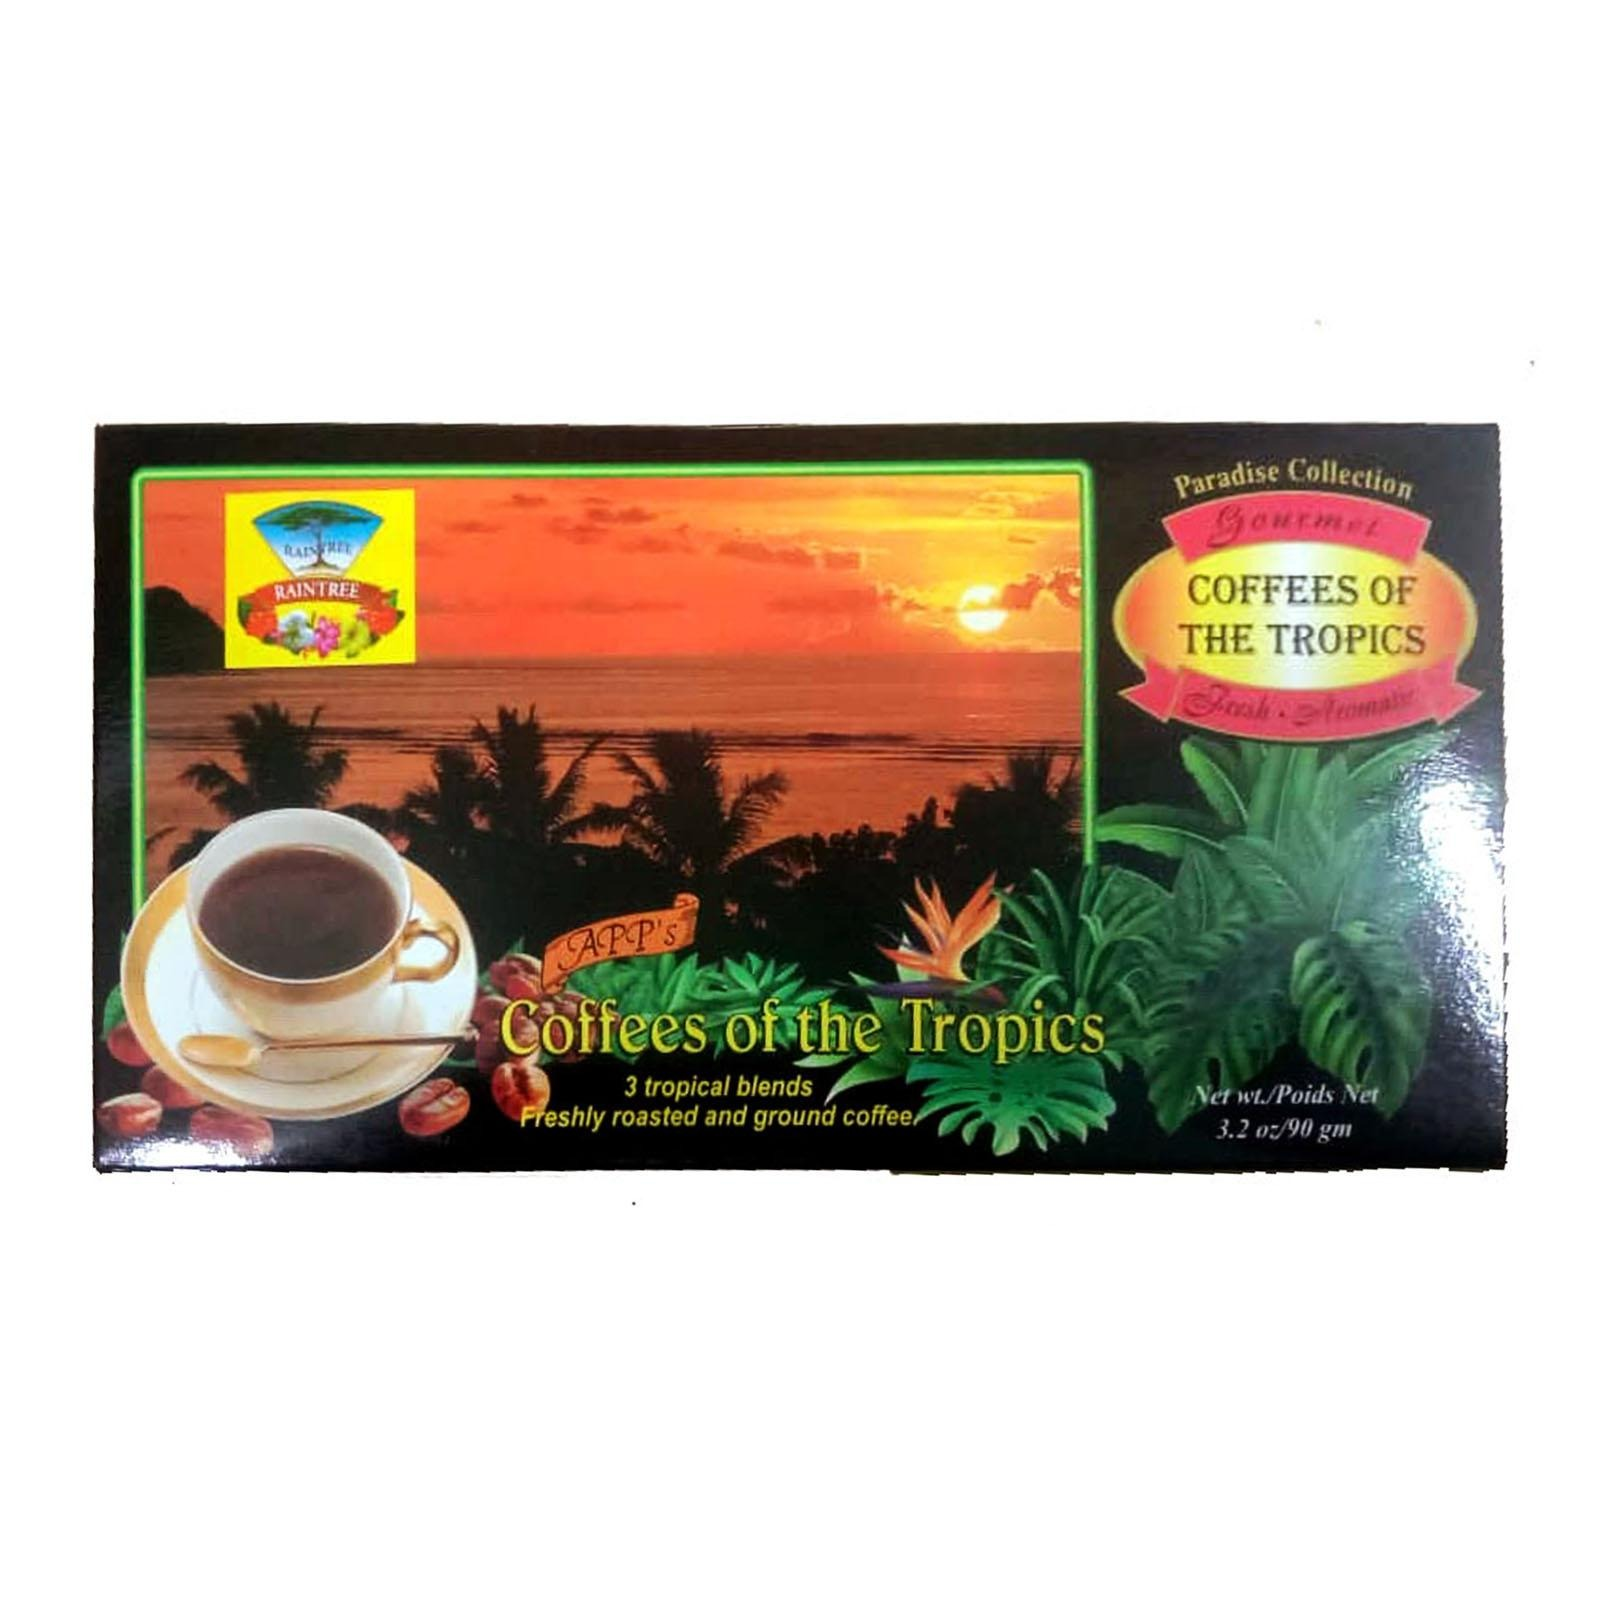 Raintree Coffees Of The Tropics (Paradise Collection)